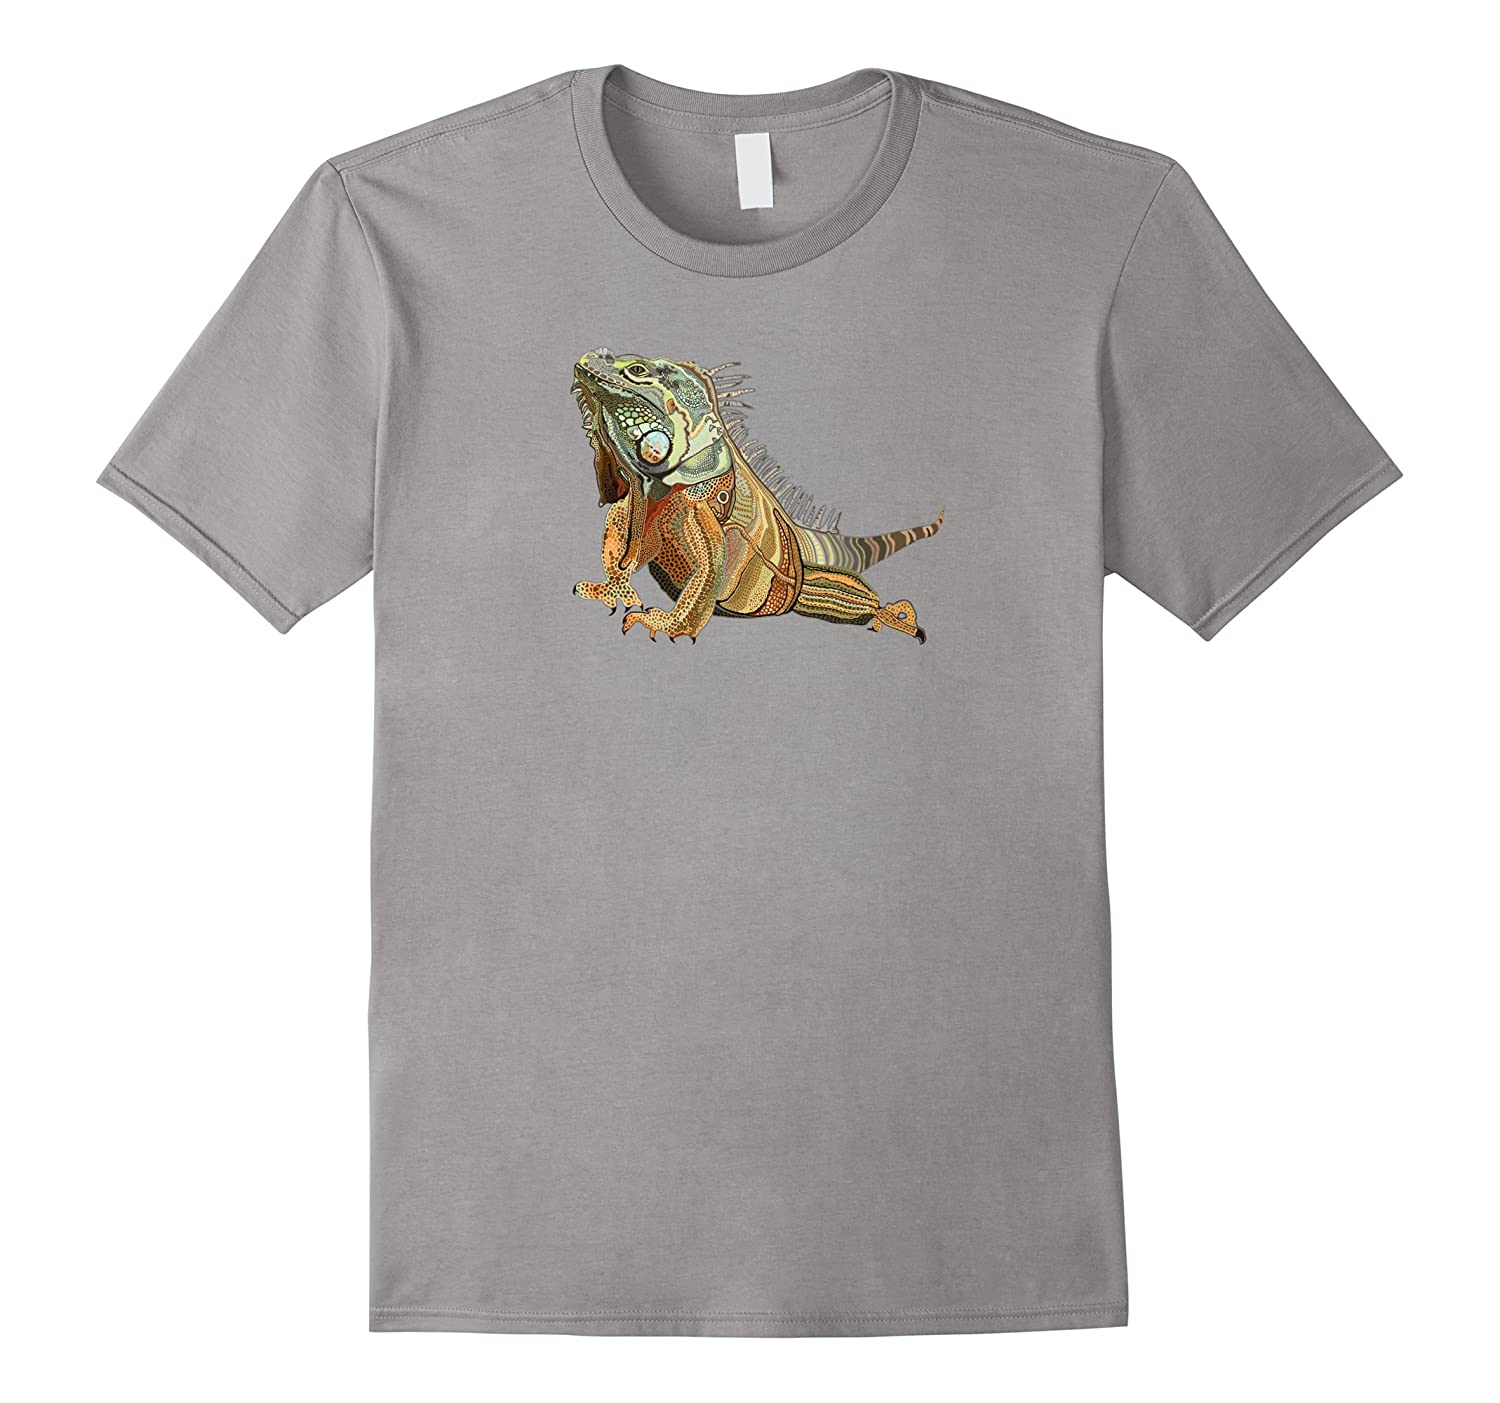 Apollo-Hand Drawn Lizard-Cool Bearded Dragon T Shirt Art-CD